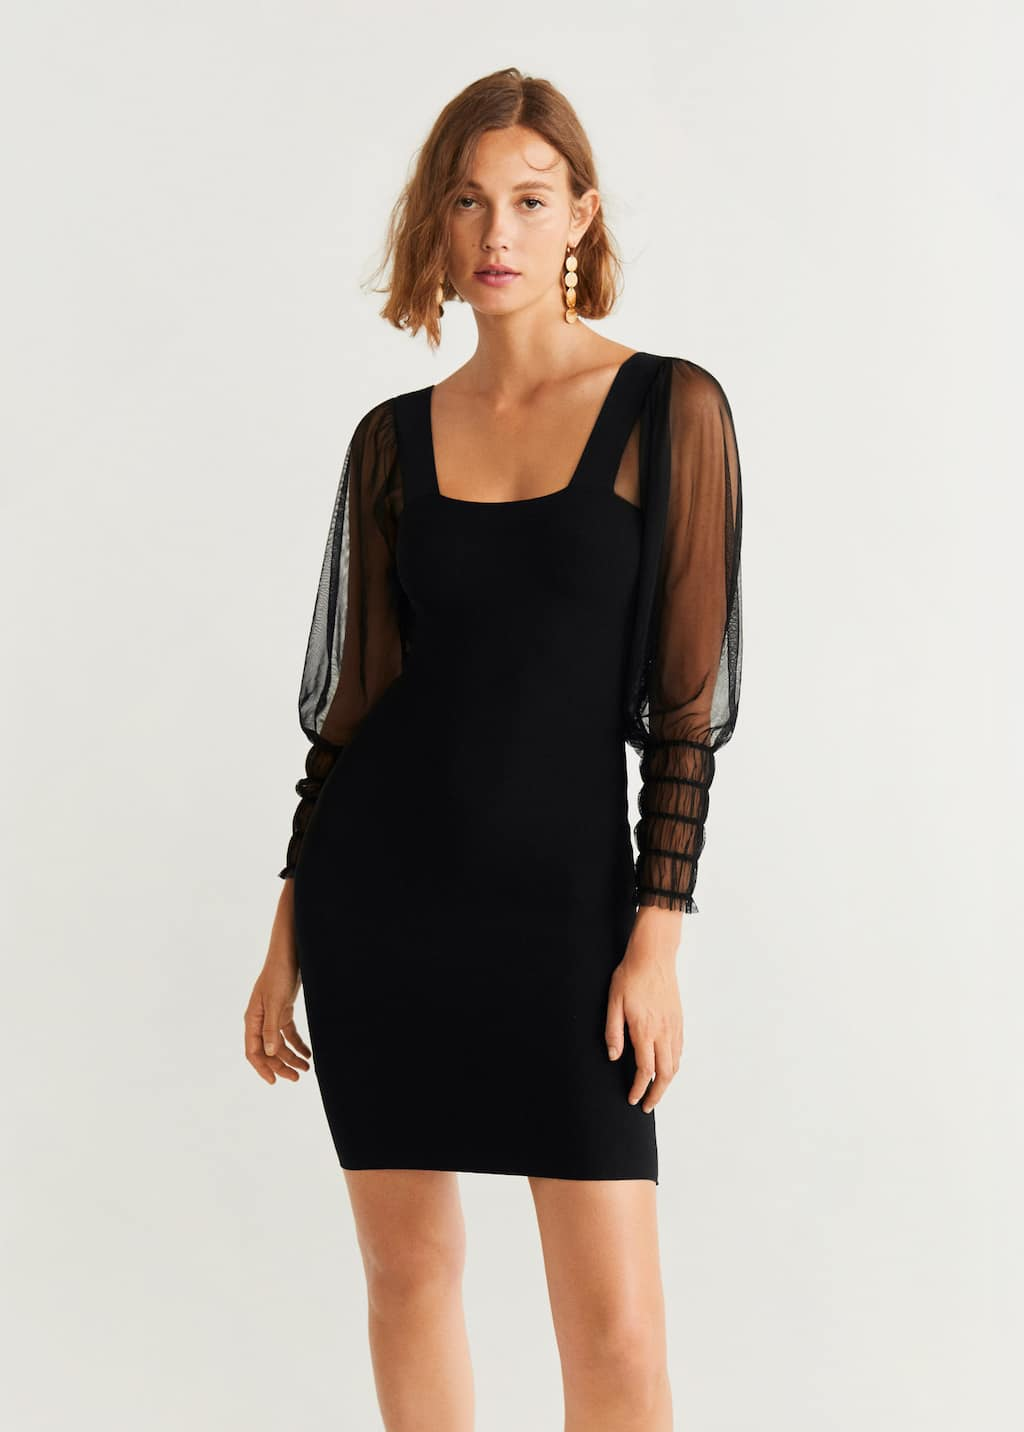 Organza sleeves dress - Woman  OUTLET United Kingdom (Channel